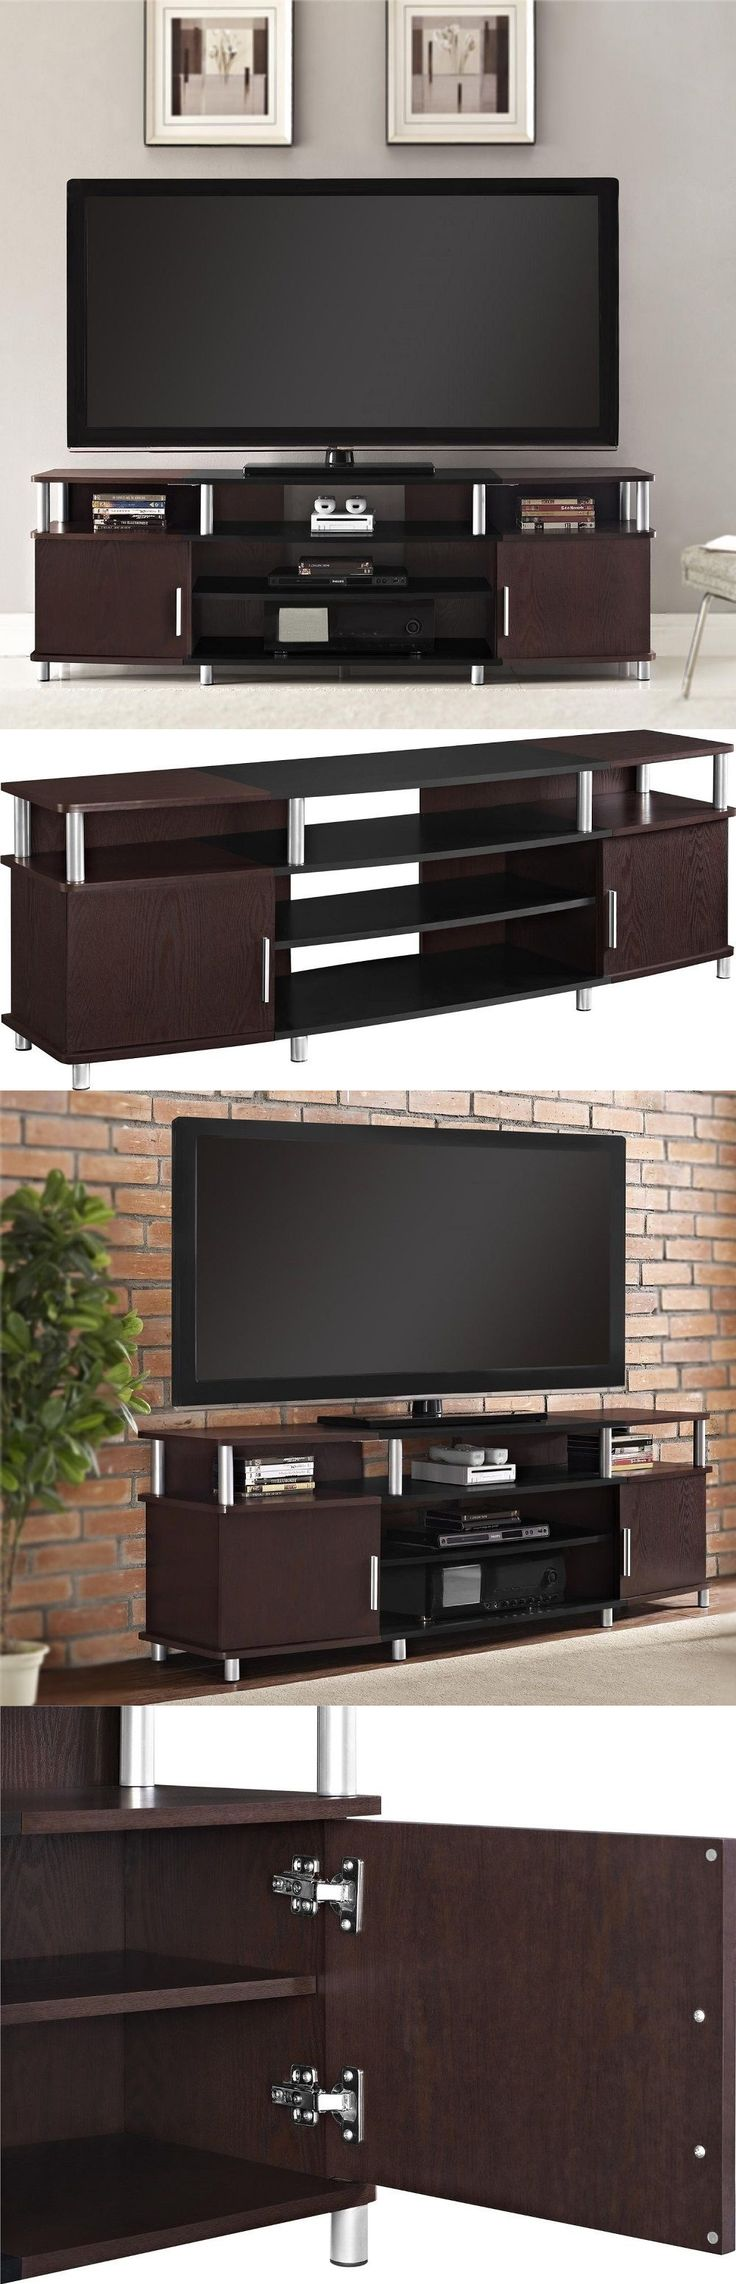 Entertainment Units TV Stands 20488: 70 Inch Tv Stand Black Cherry Wood Living Room Entertainment Center Gaming Media -> BUY IT NOW ONLY: $159.66 on eBay!